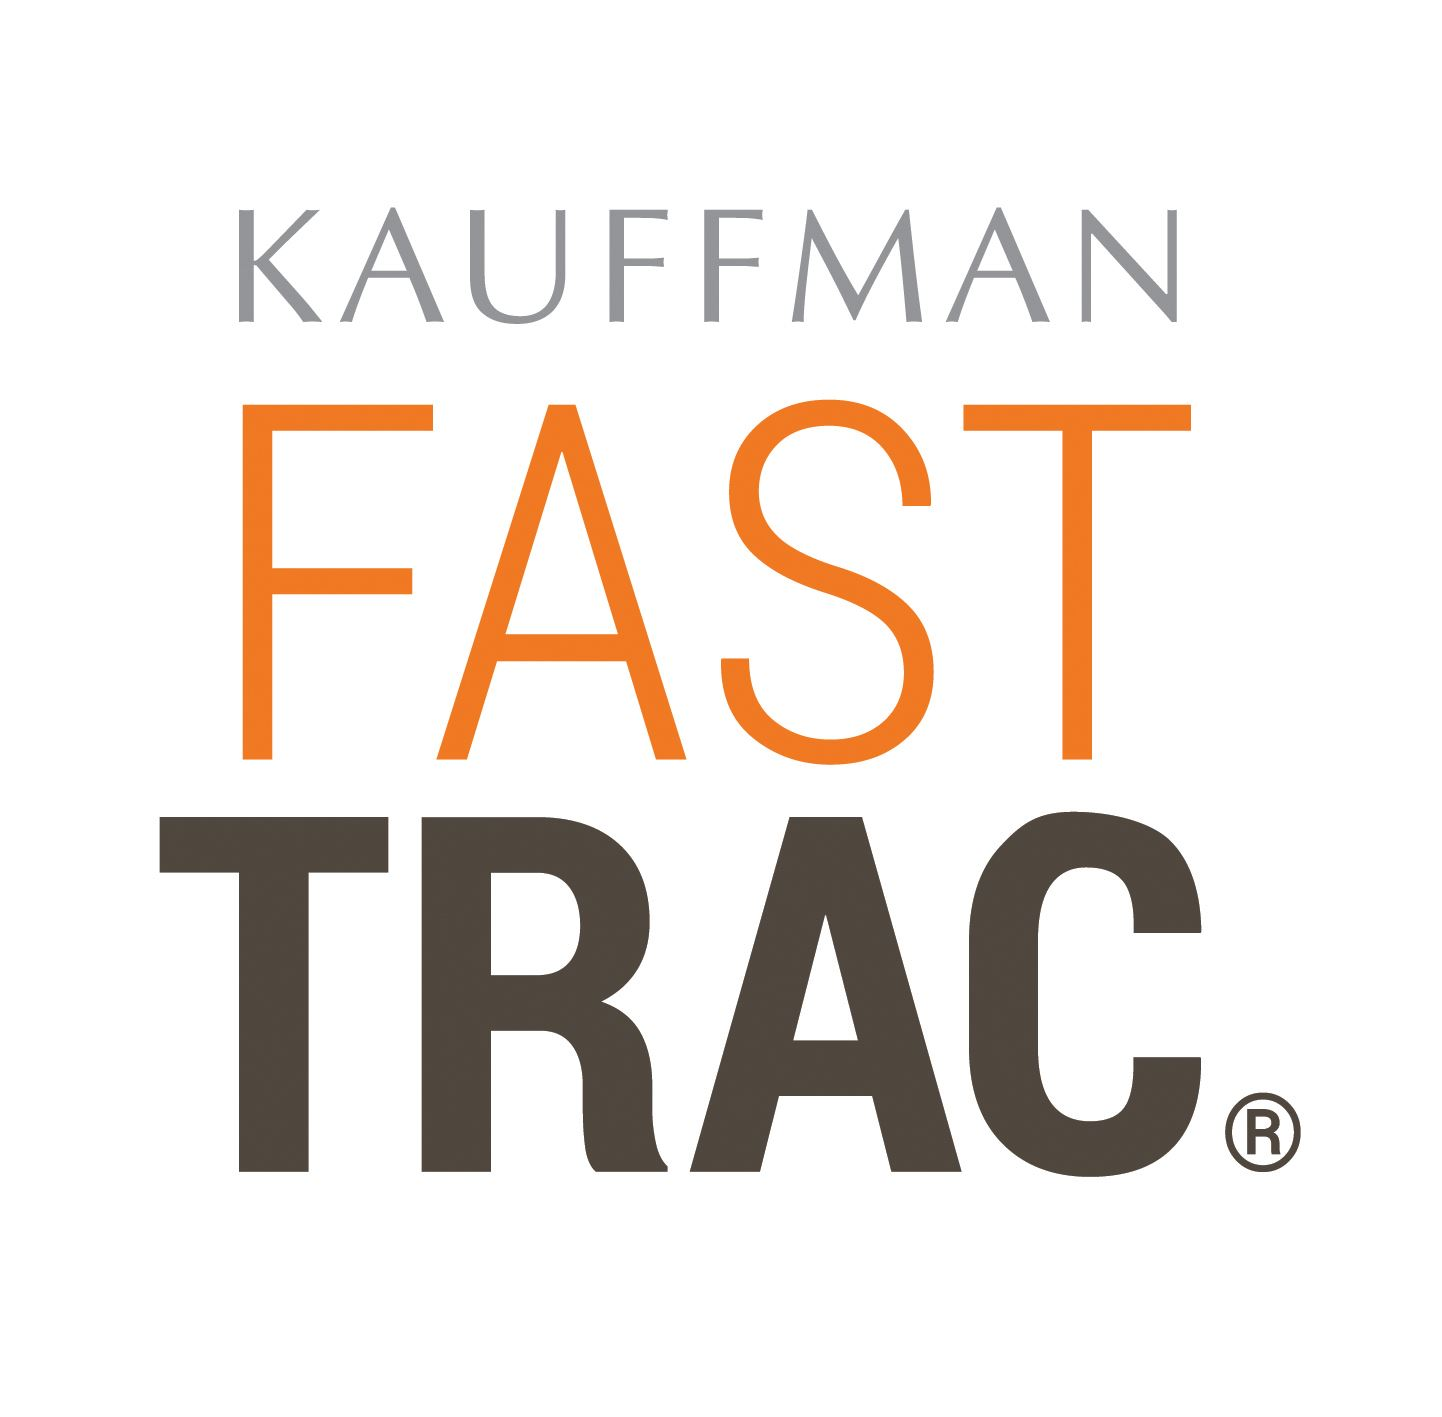 Kauffman FastTrac Logo Opens in new window